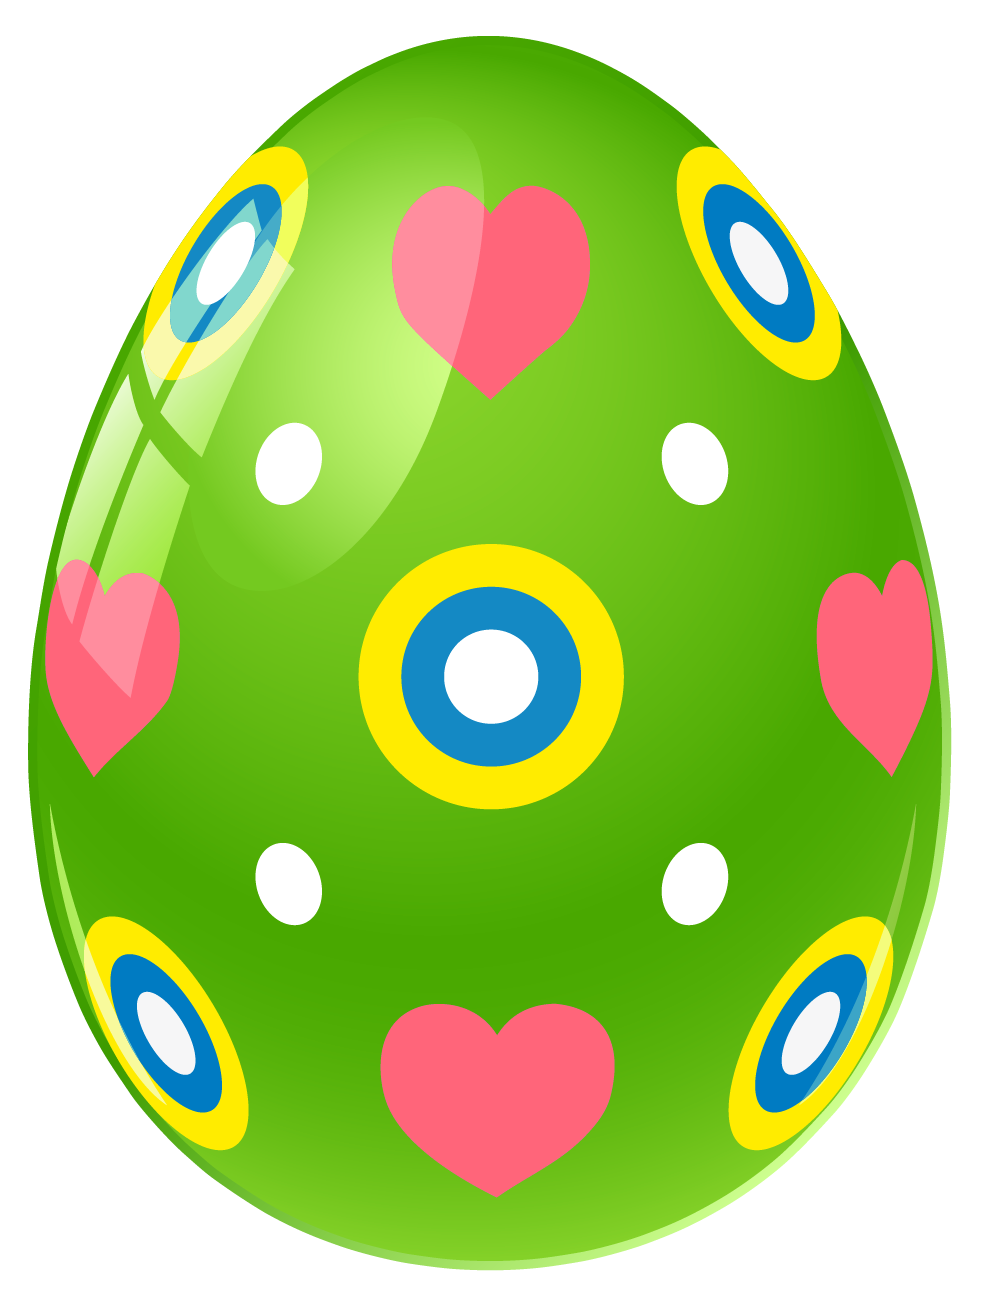 Green Easter Egg With Hearts .